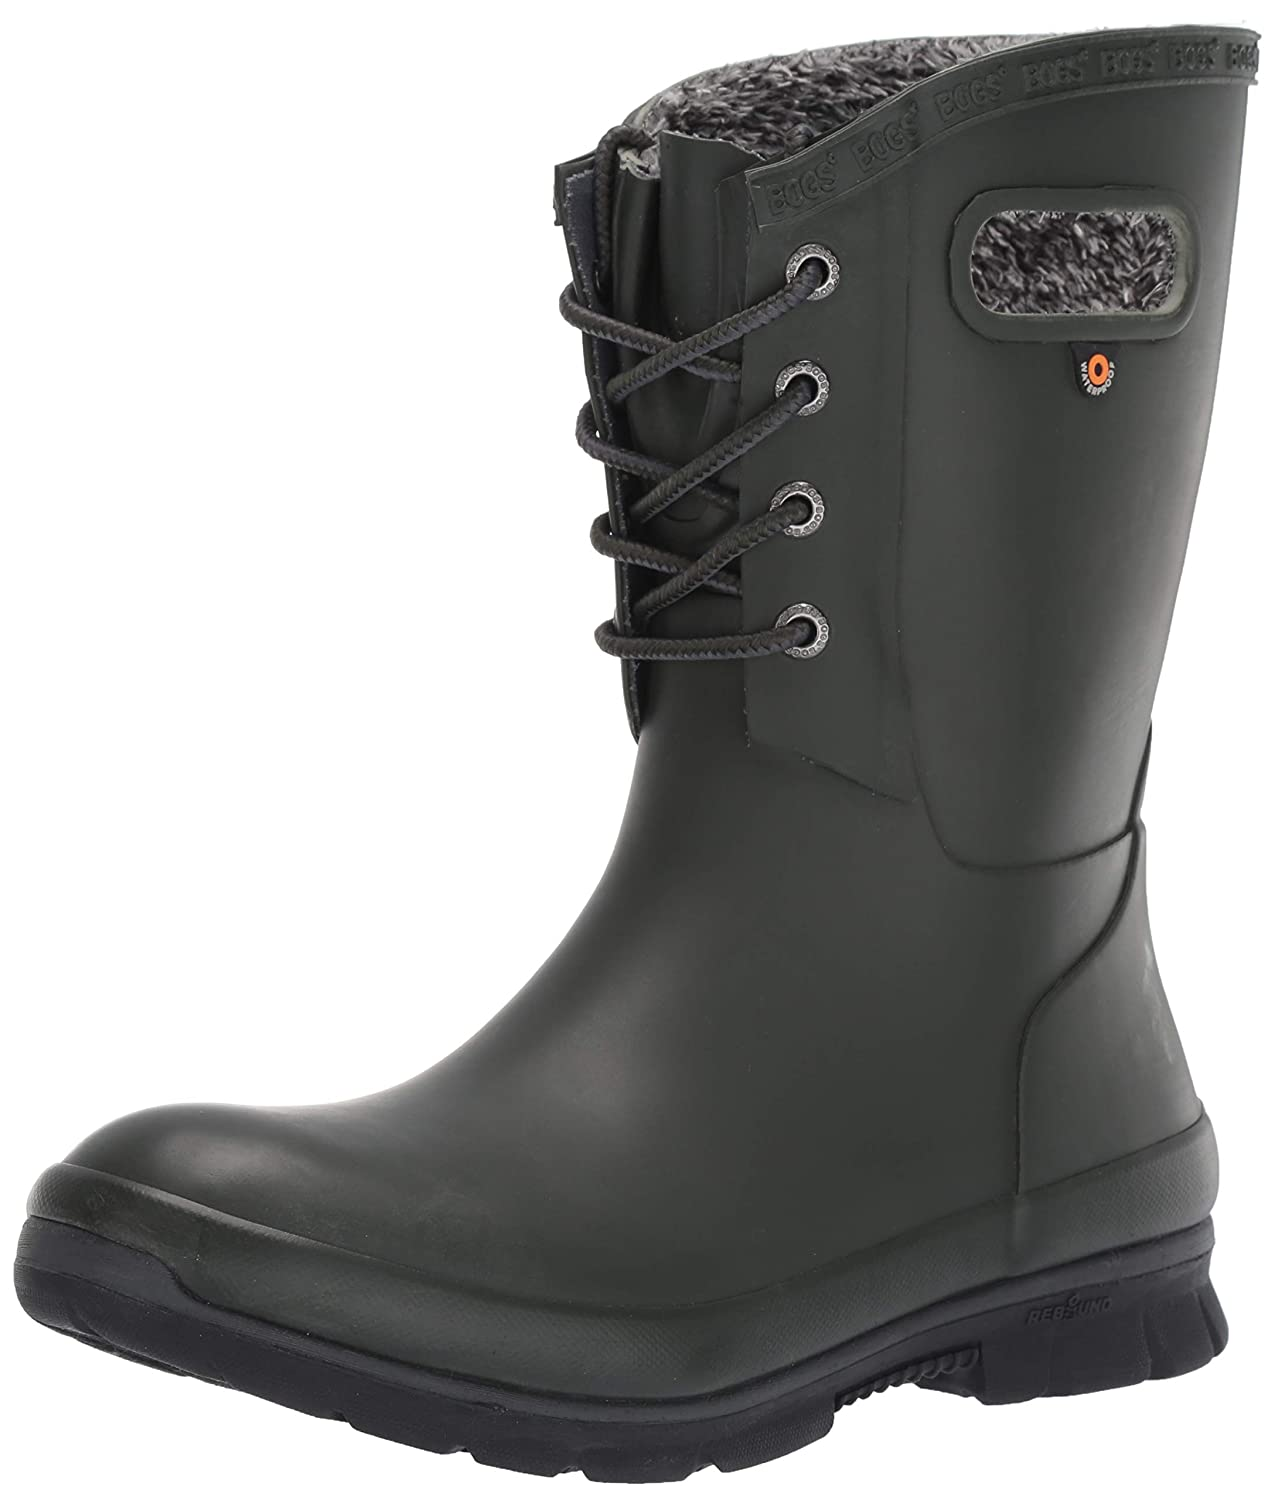 Dark Green Bogs Women's Amanda Plush Snow Boot